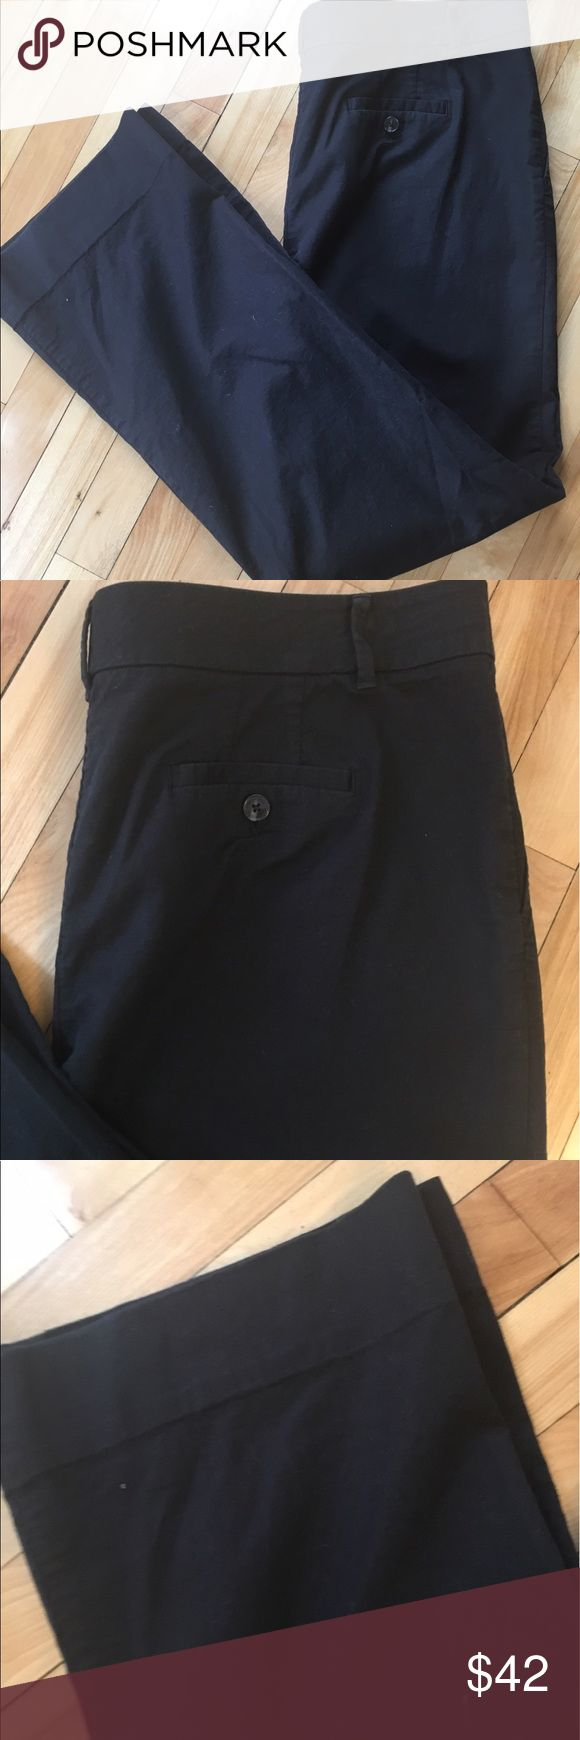 Tory Butch Stretch Twill Black Casual Pants Sz 14 Super lightweight stretch cotton chinos with slash front pockets and two back pockets. Unlined. Comfortable beyond belief! Tory Burch Pants Straight Leg